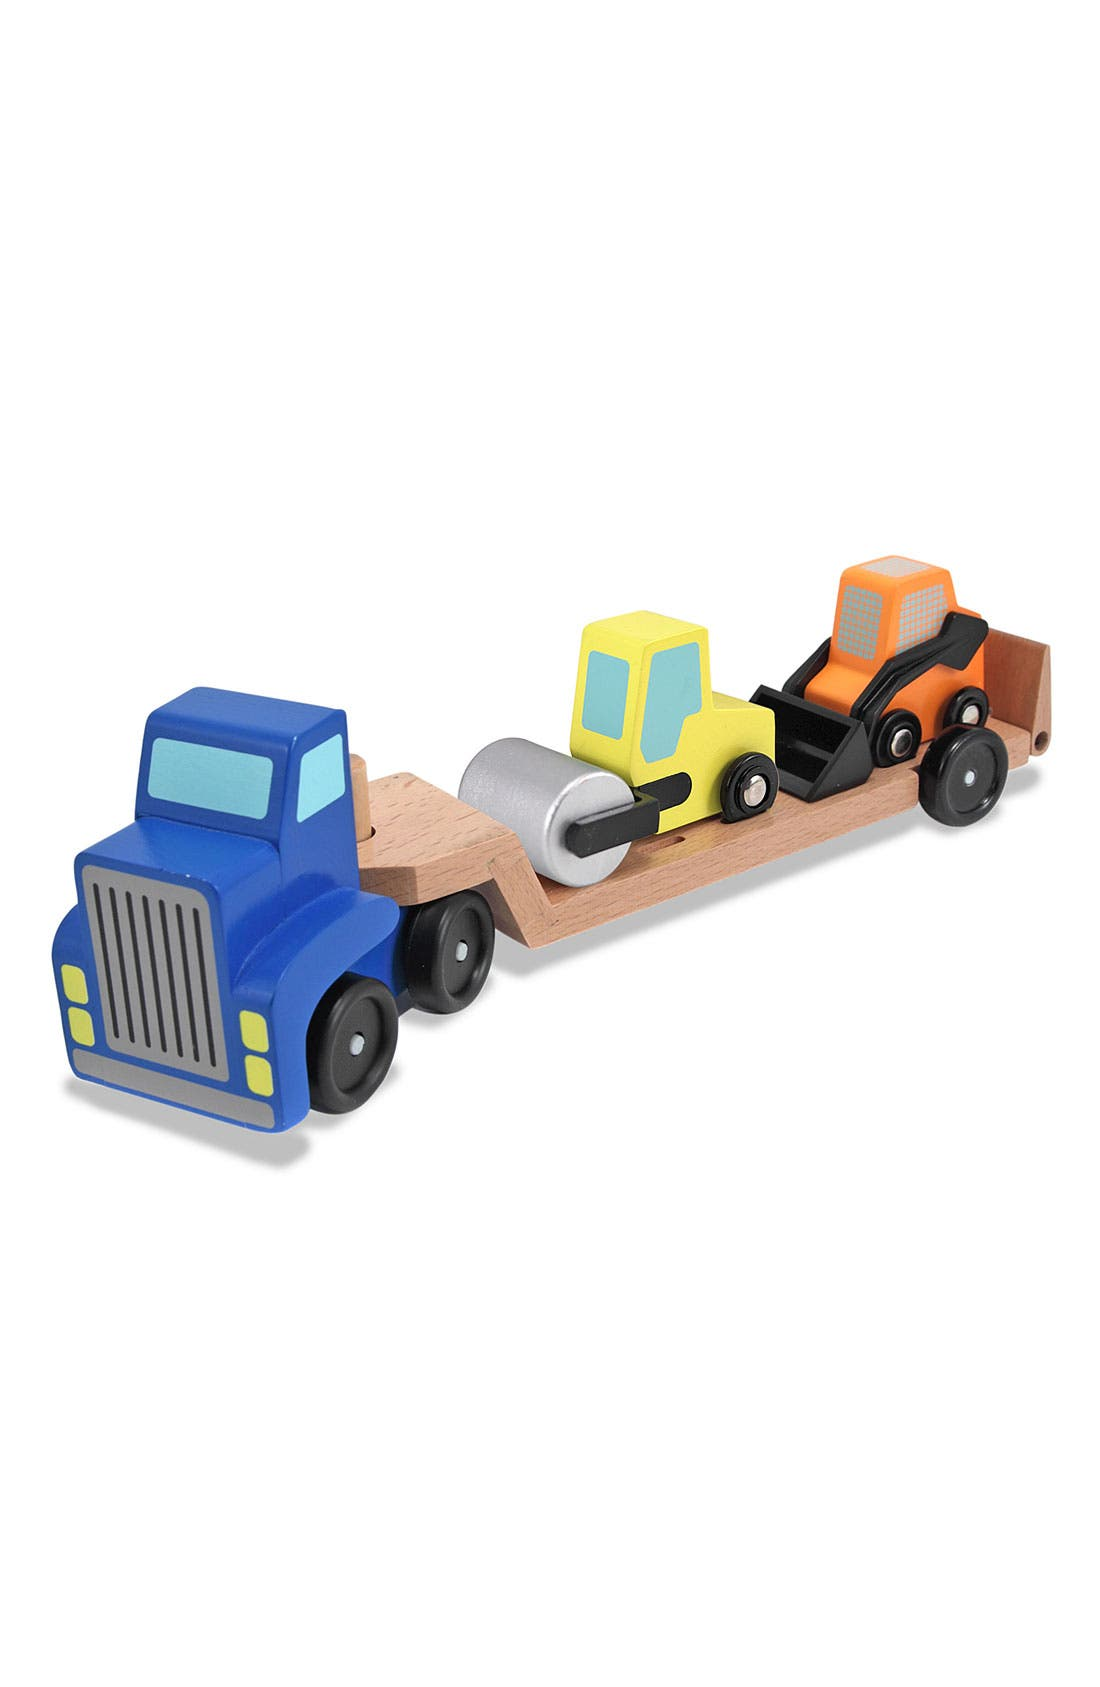 Main Image - Melissa & Doug Wooden Vehicle Carrier